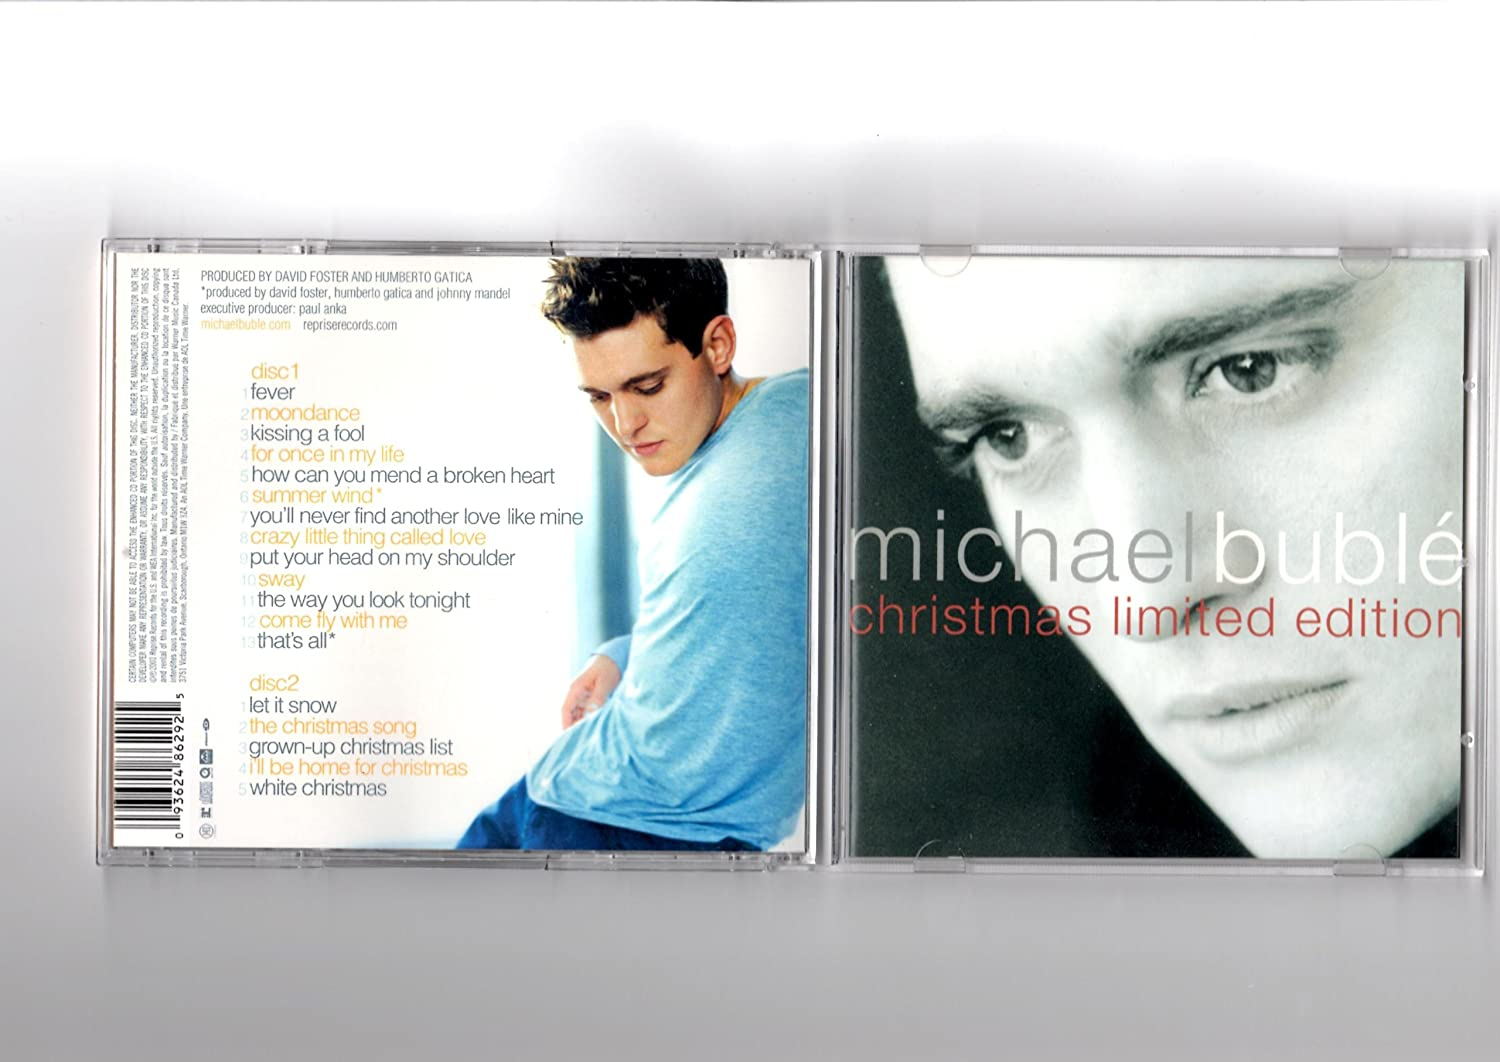 Michael Bublé - Christmas Limited Edition - Amazon.com Music